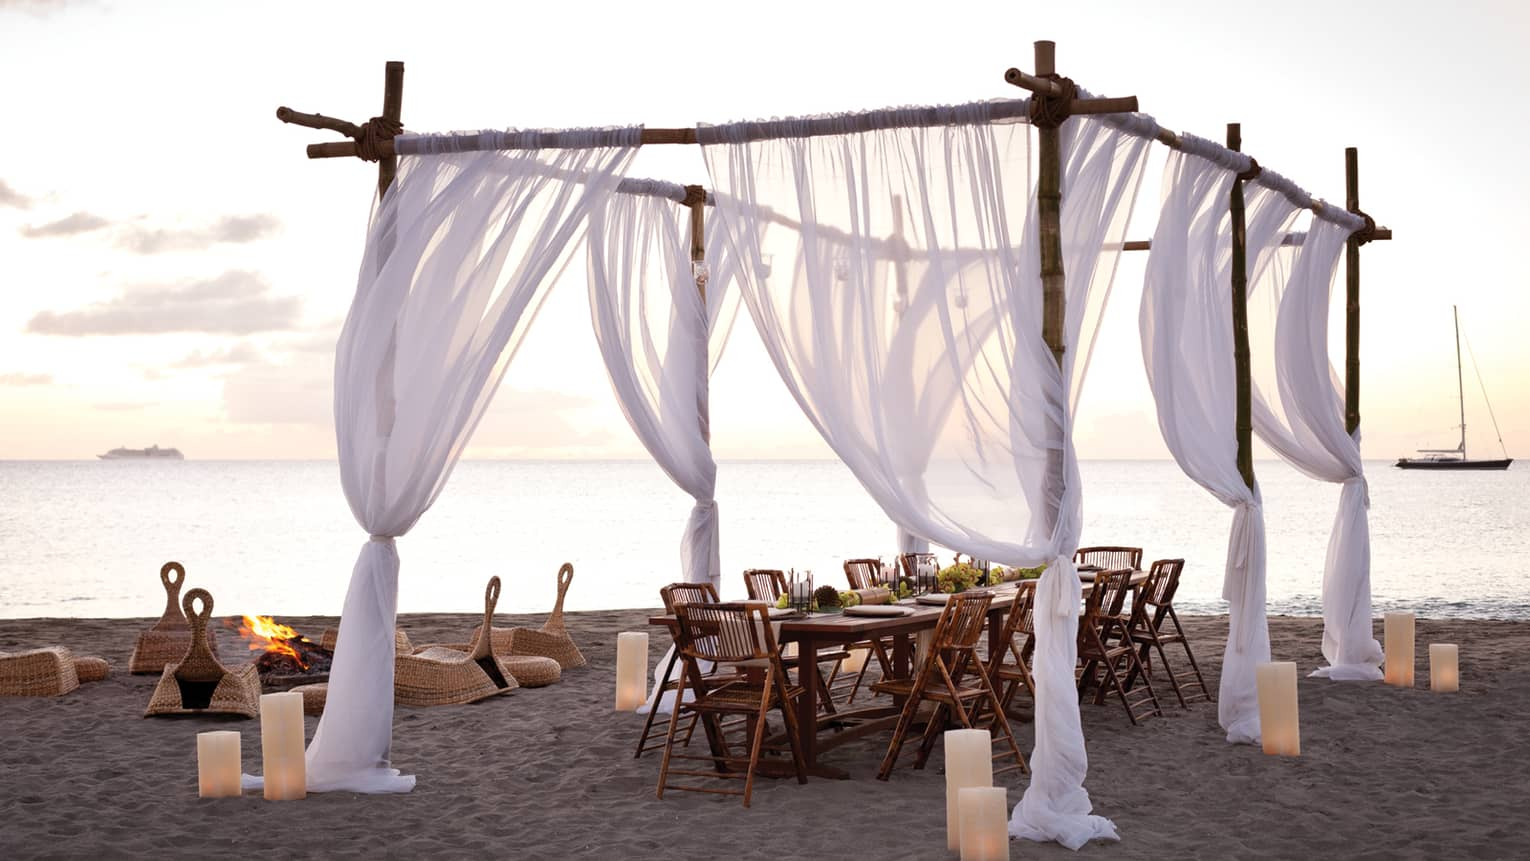 Sheer white curtains draped across wood posts around dining table on beach at sunset